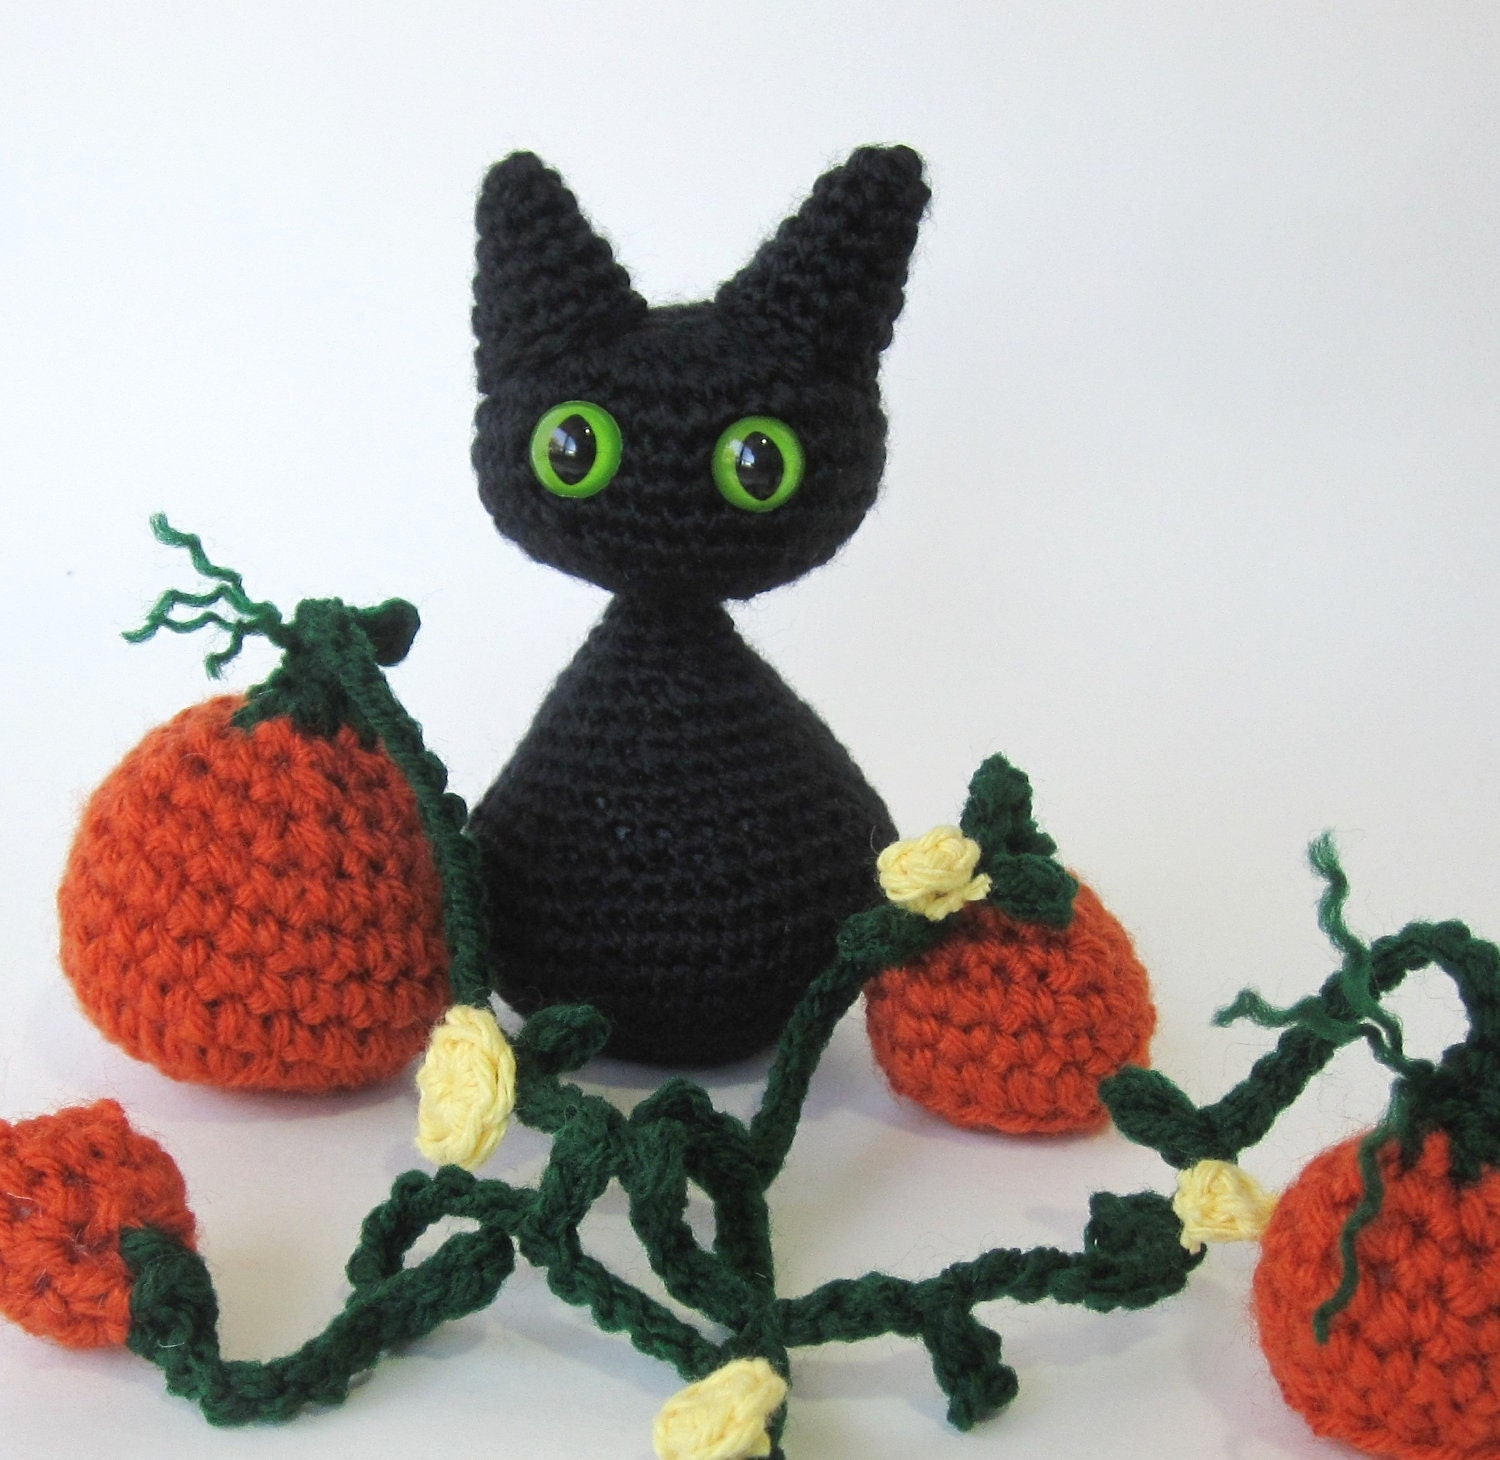 Free Easy Halloween Crochet Patterns : Halloween Crochet Pattern Cat Kitten Pumpkin Amigurumi w/